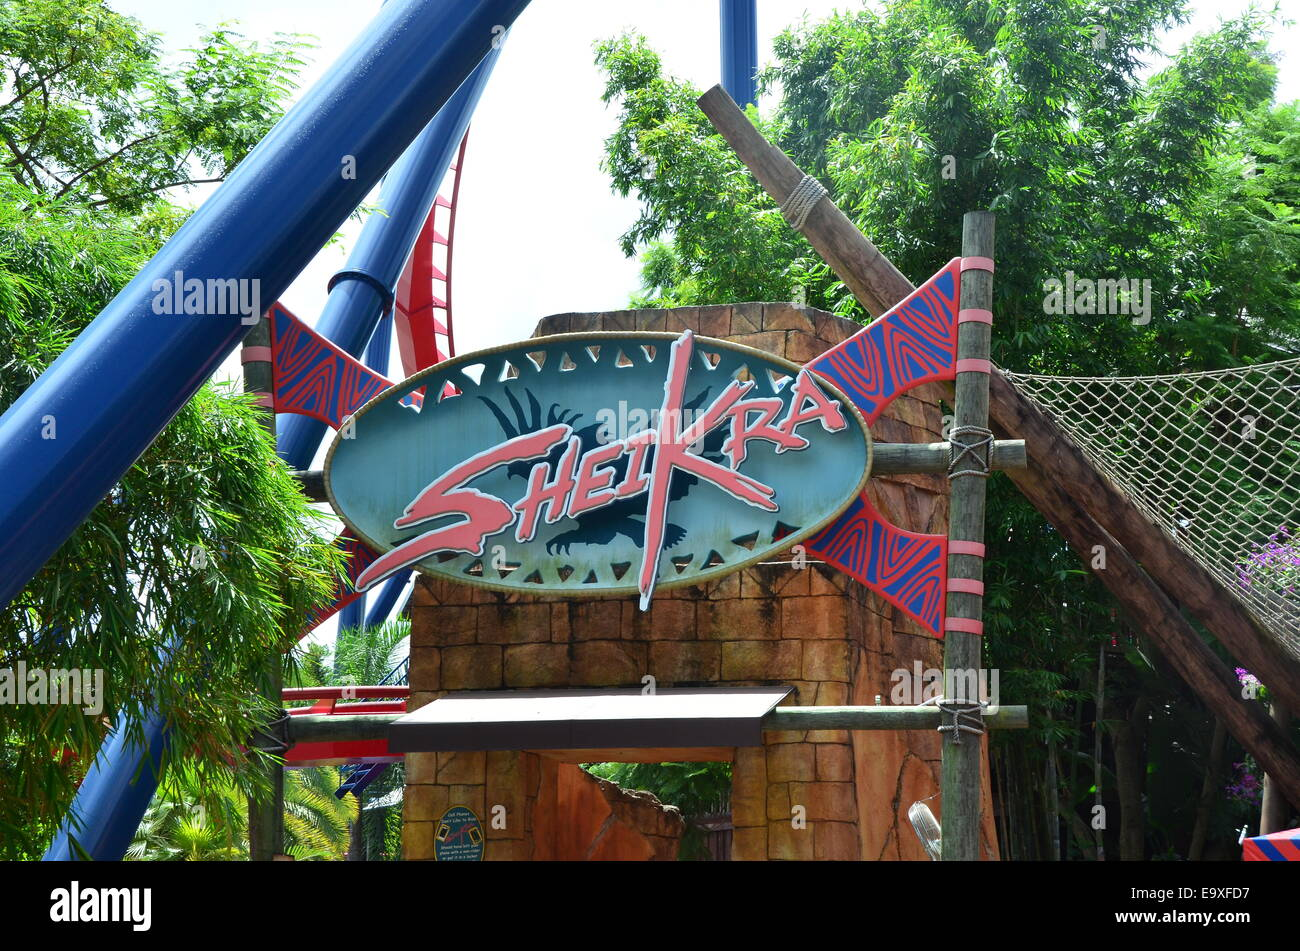 SheiKra Roller Coaster Ride At Busch Gardens, Tampa, Florida, USA